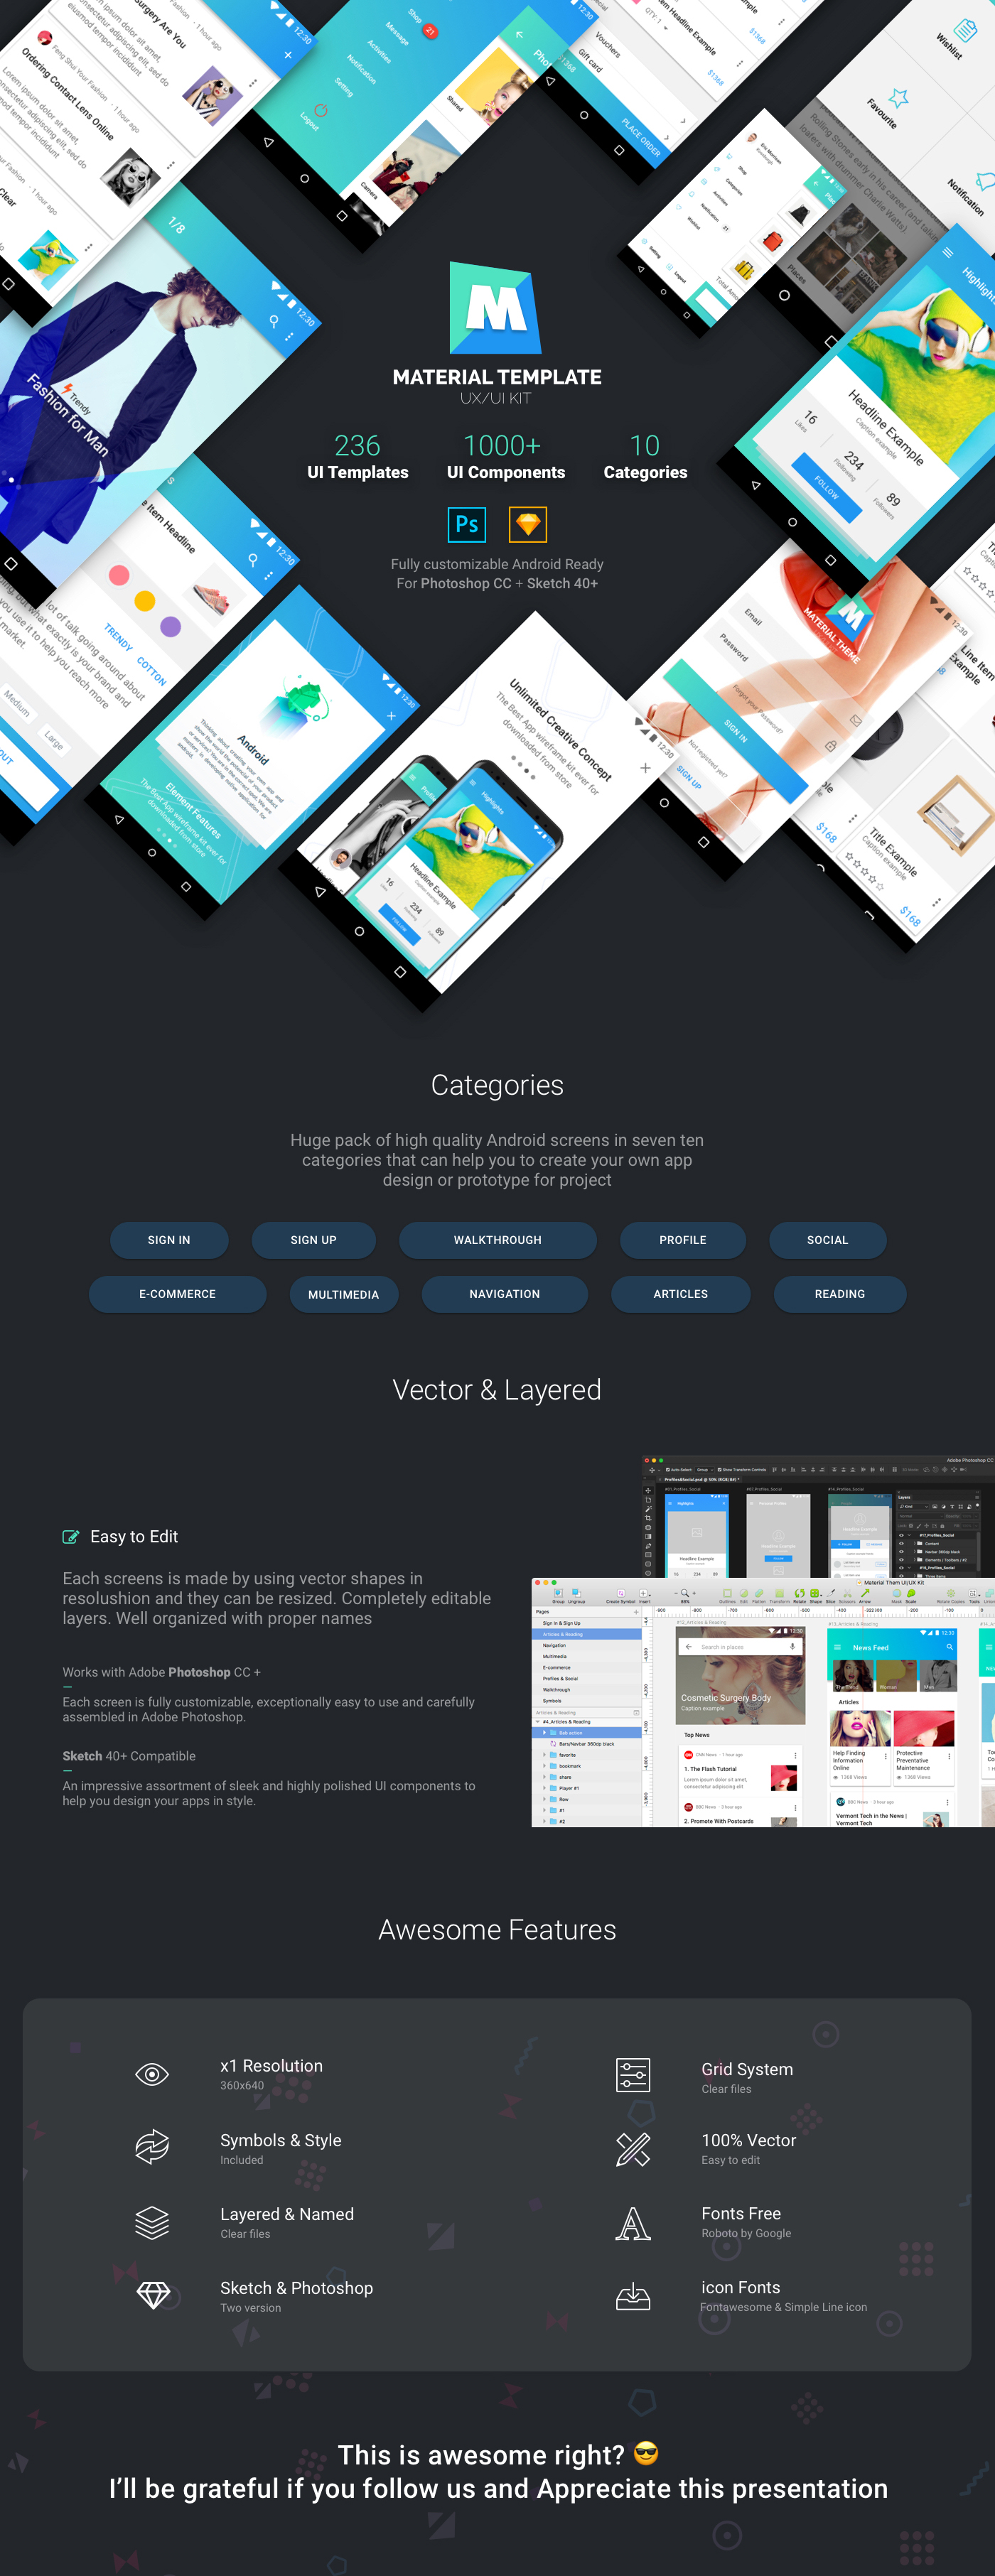 Material Template UX/UI Kit by tonytranstore | ThemeForest